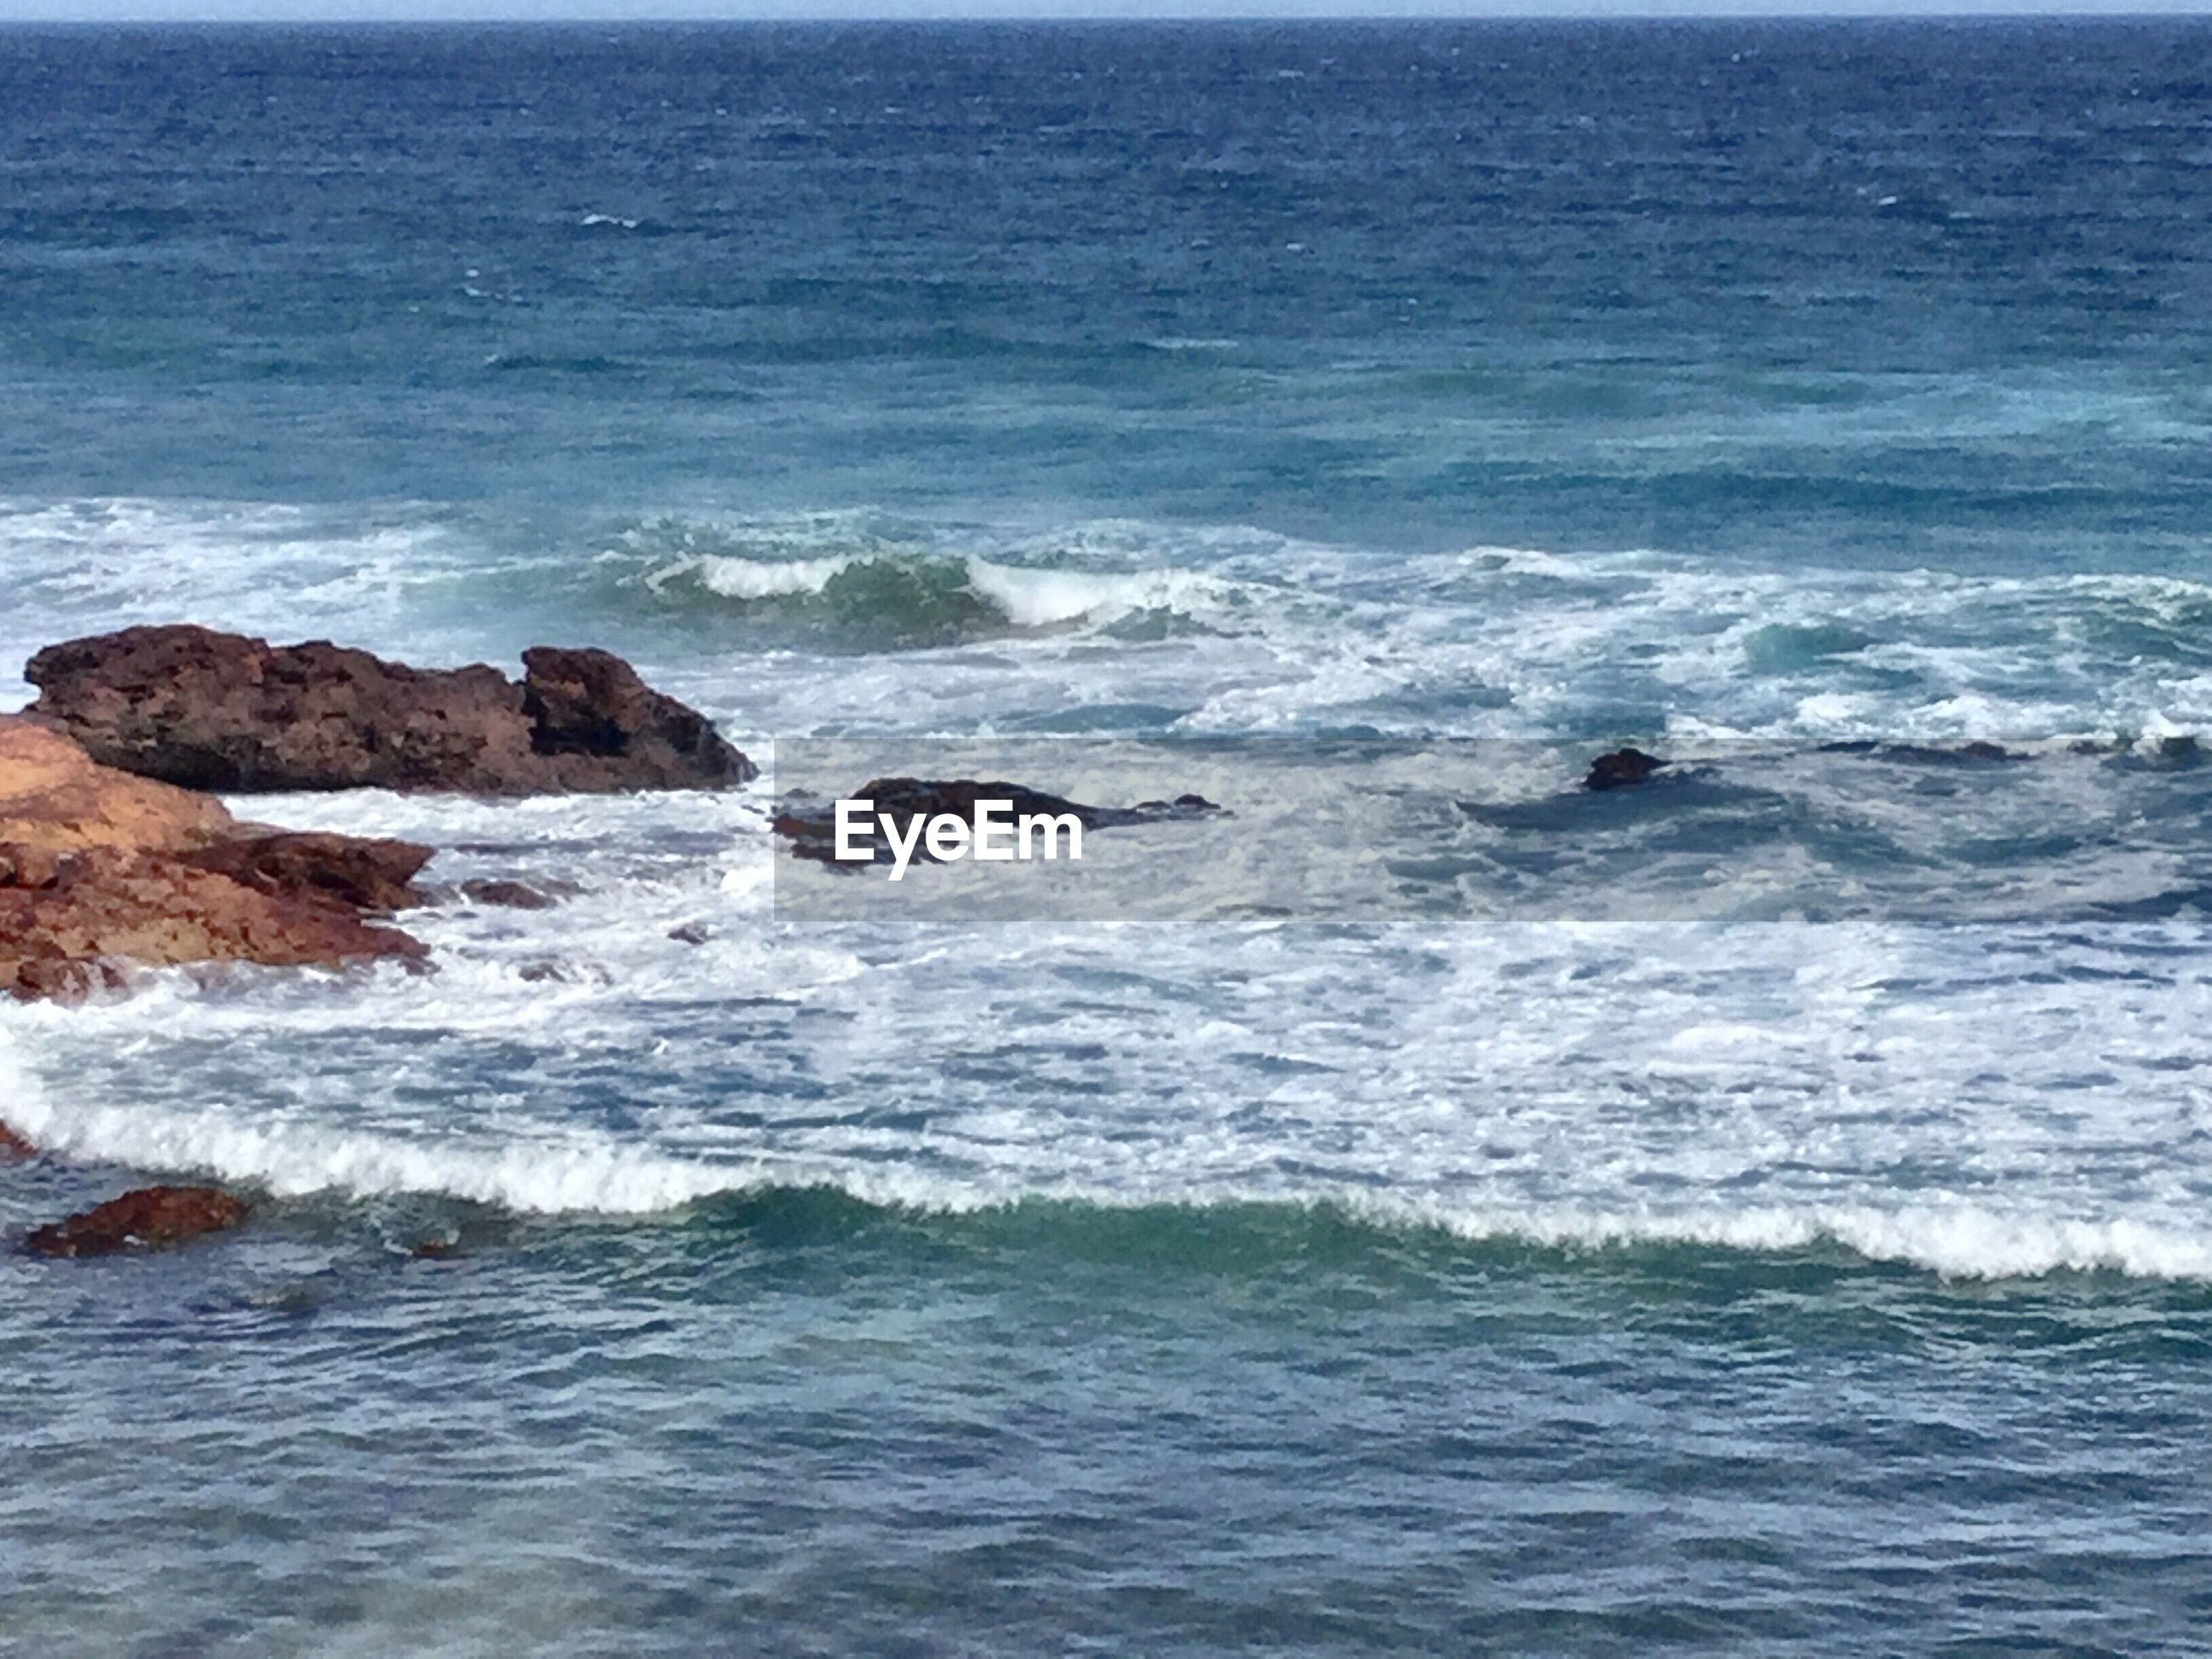 SCENIC VIEW OF SEA AND WAVES